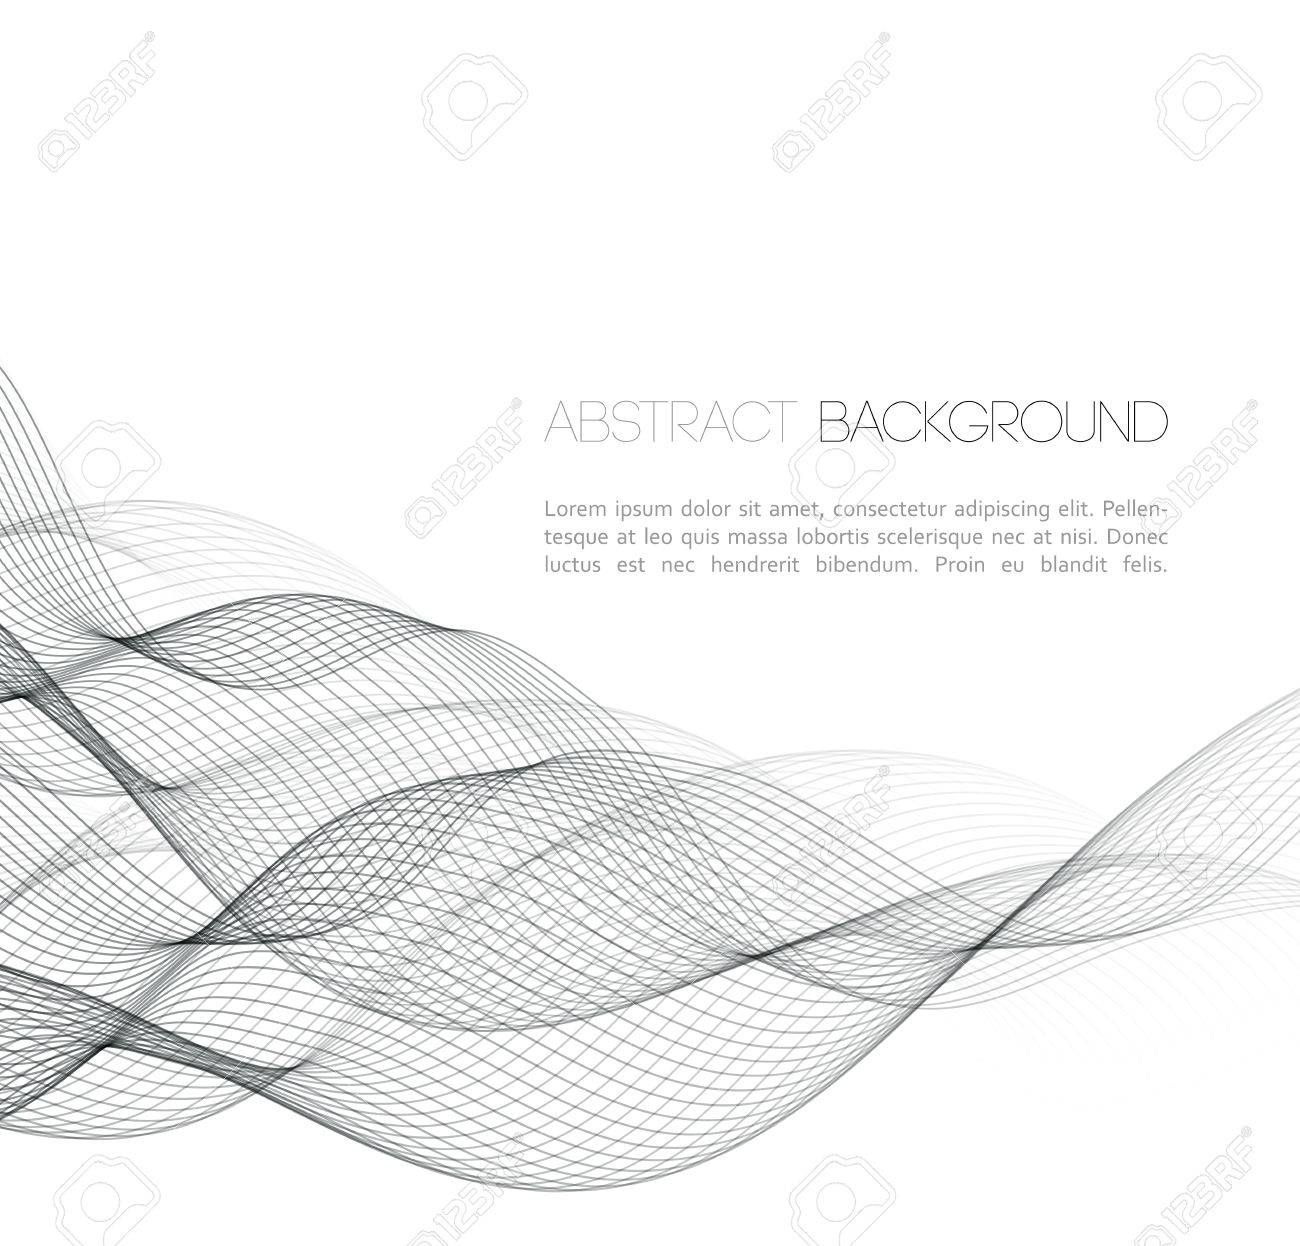 Vector Abstract Curved Lines Background Template Design Ad Curved Abstract Vector Lines Design Stock Photos Photo Abstract Backgrounds